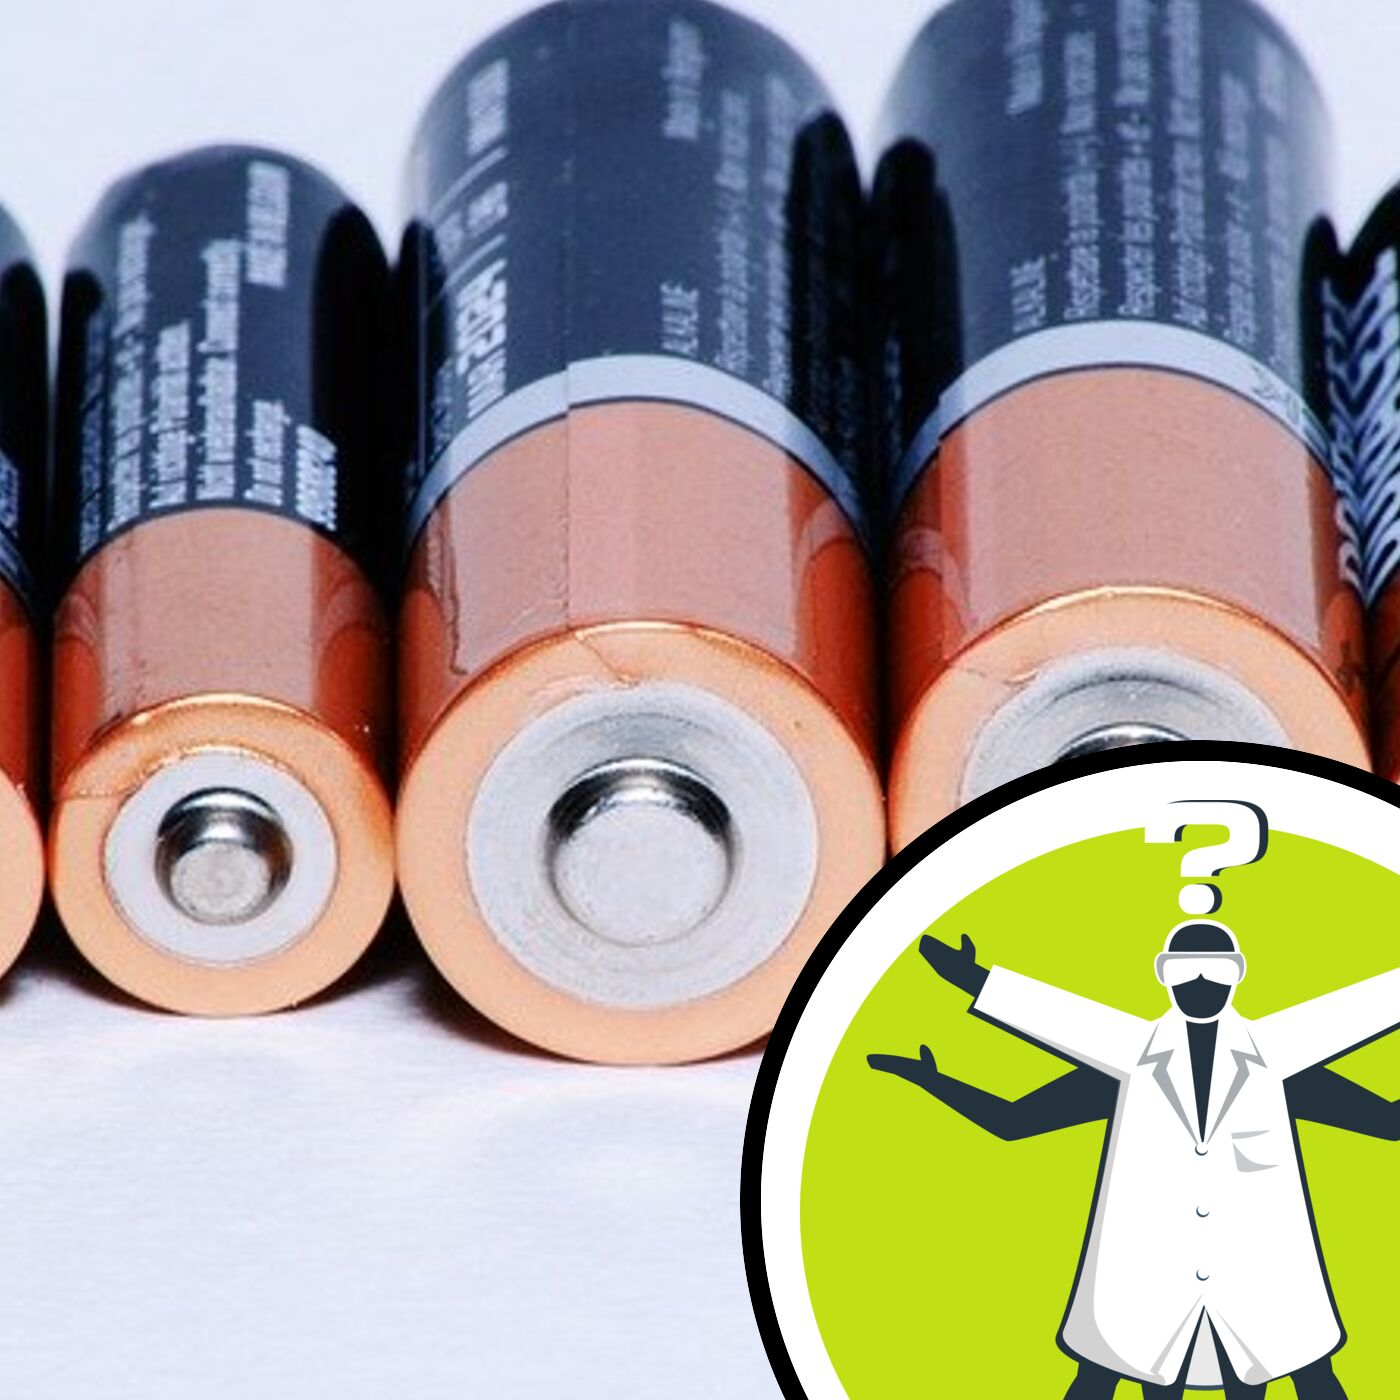 Why aren't all batteries rechargeable?